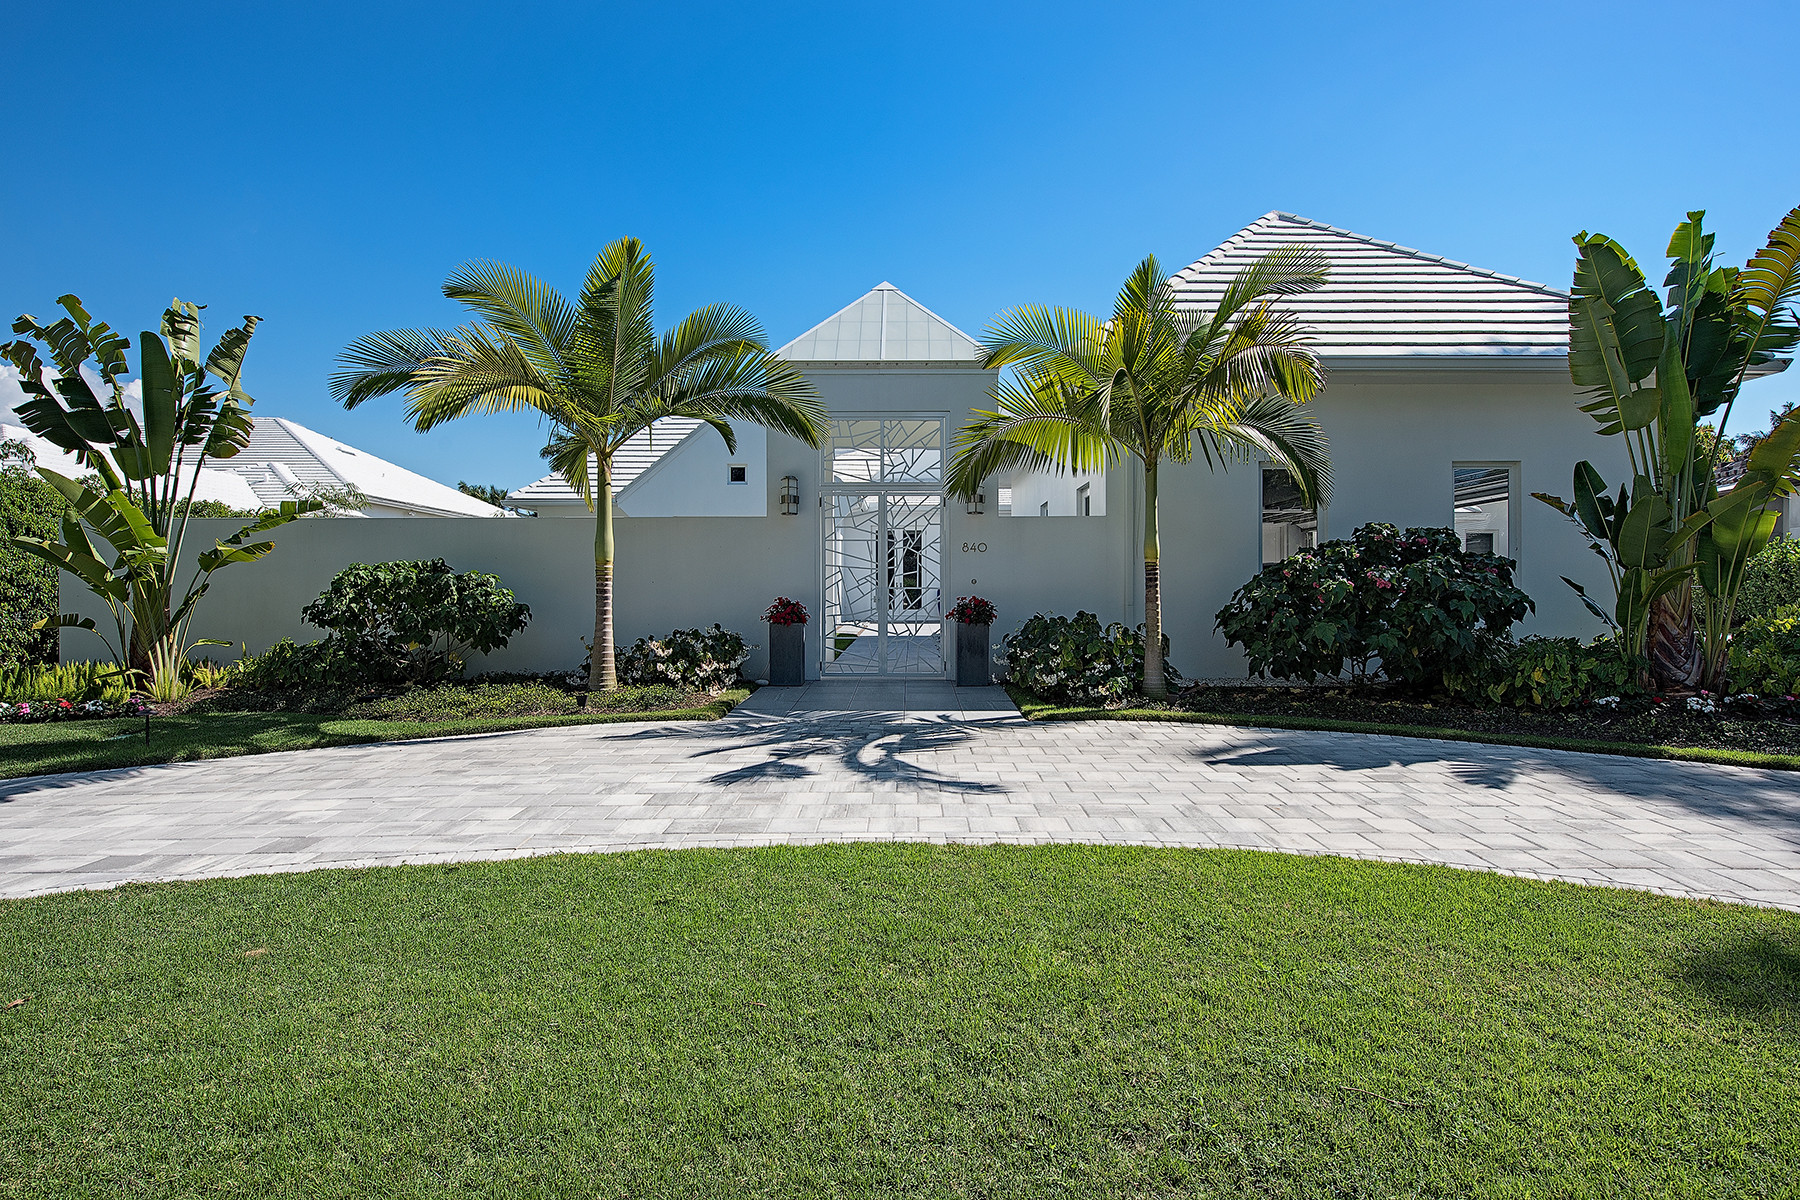 Single Family Home for Sale at AQUALANE SHORES 840 17th Ave S, Naples, Florida 34102 United States